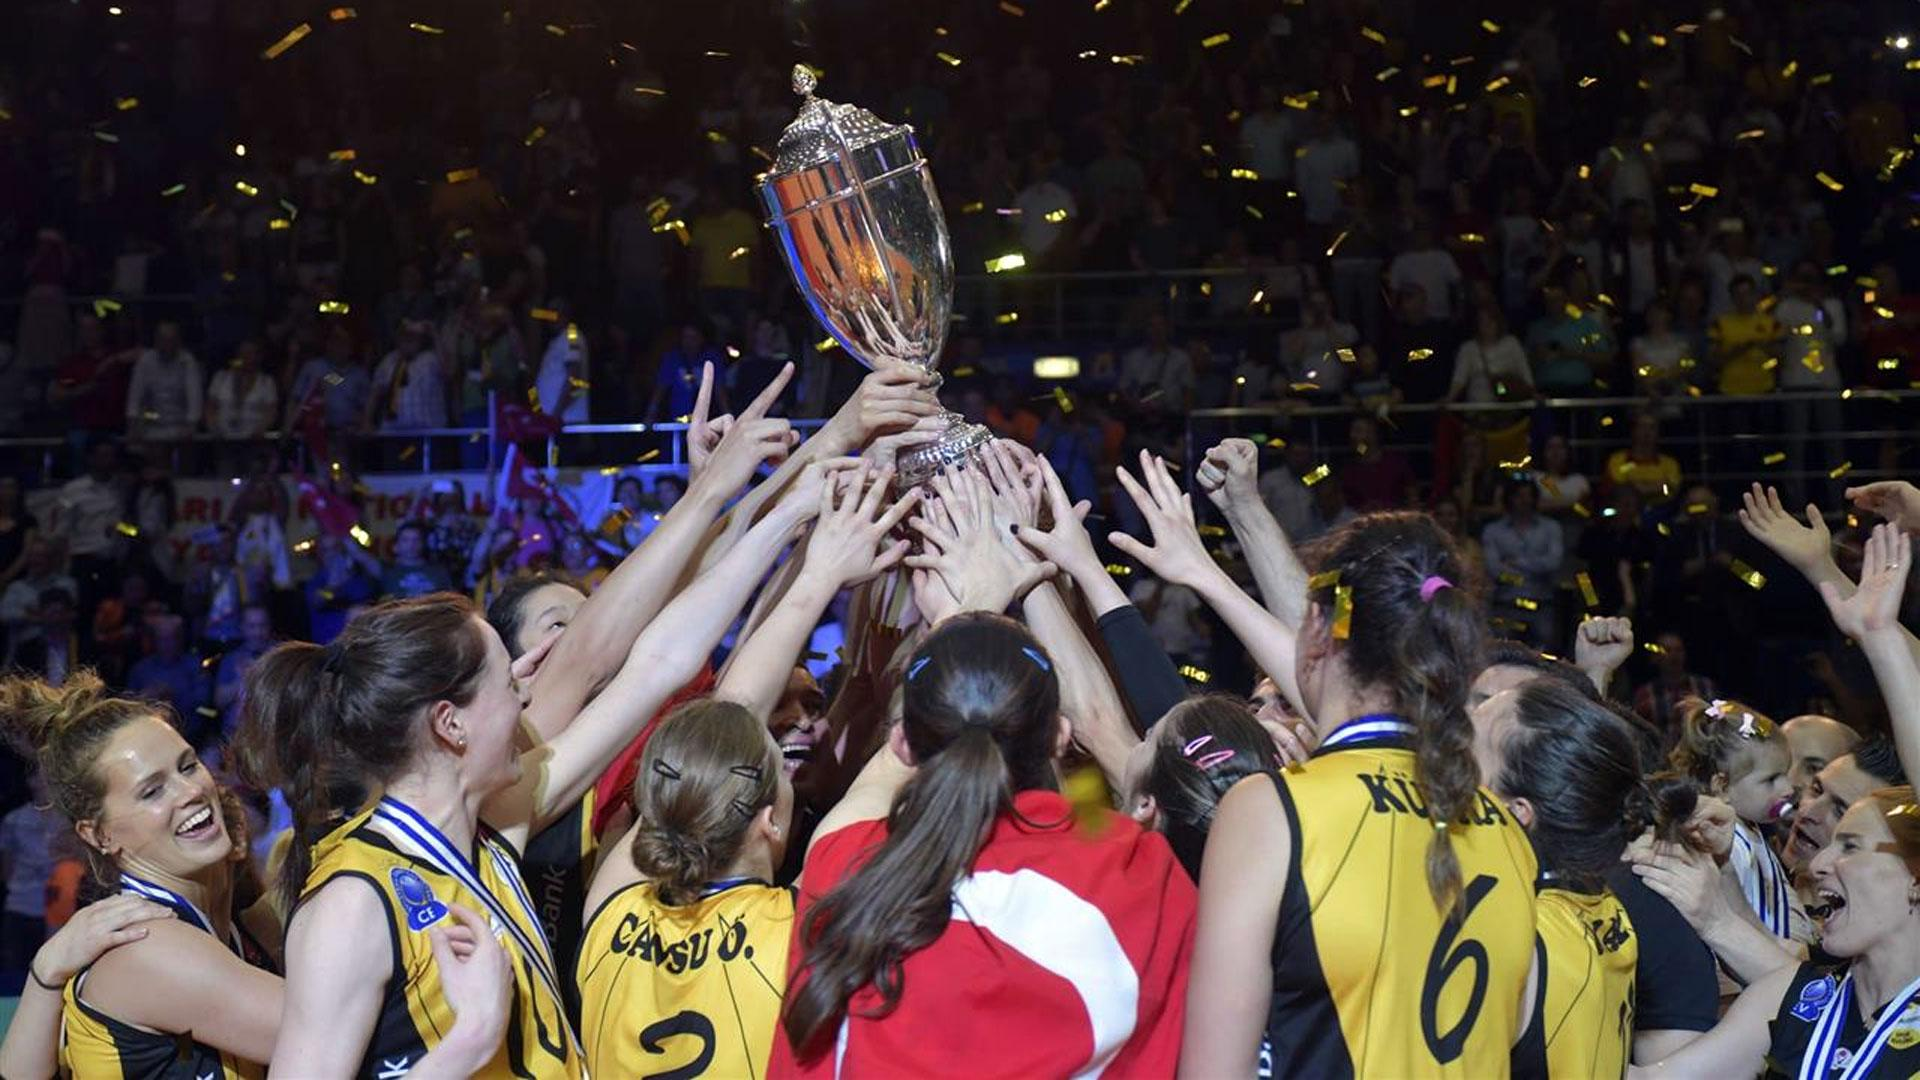 Volleyball Champions League Frauen